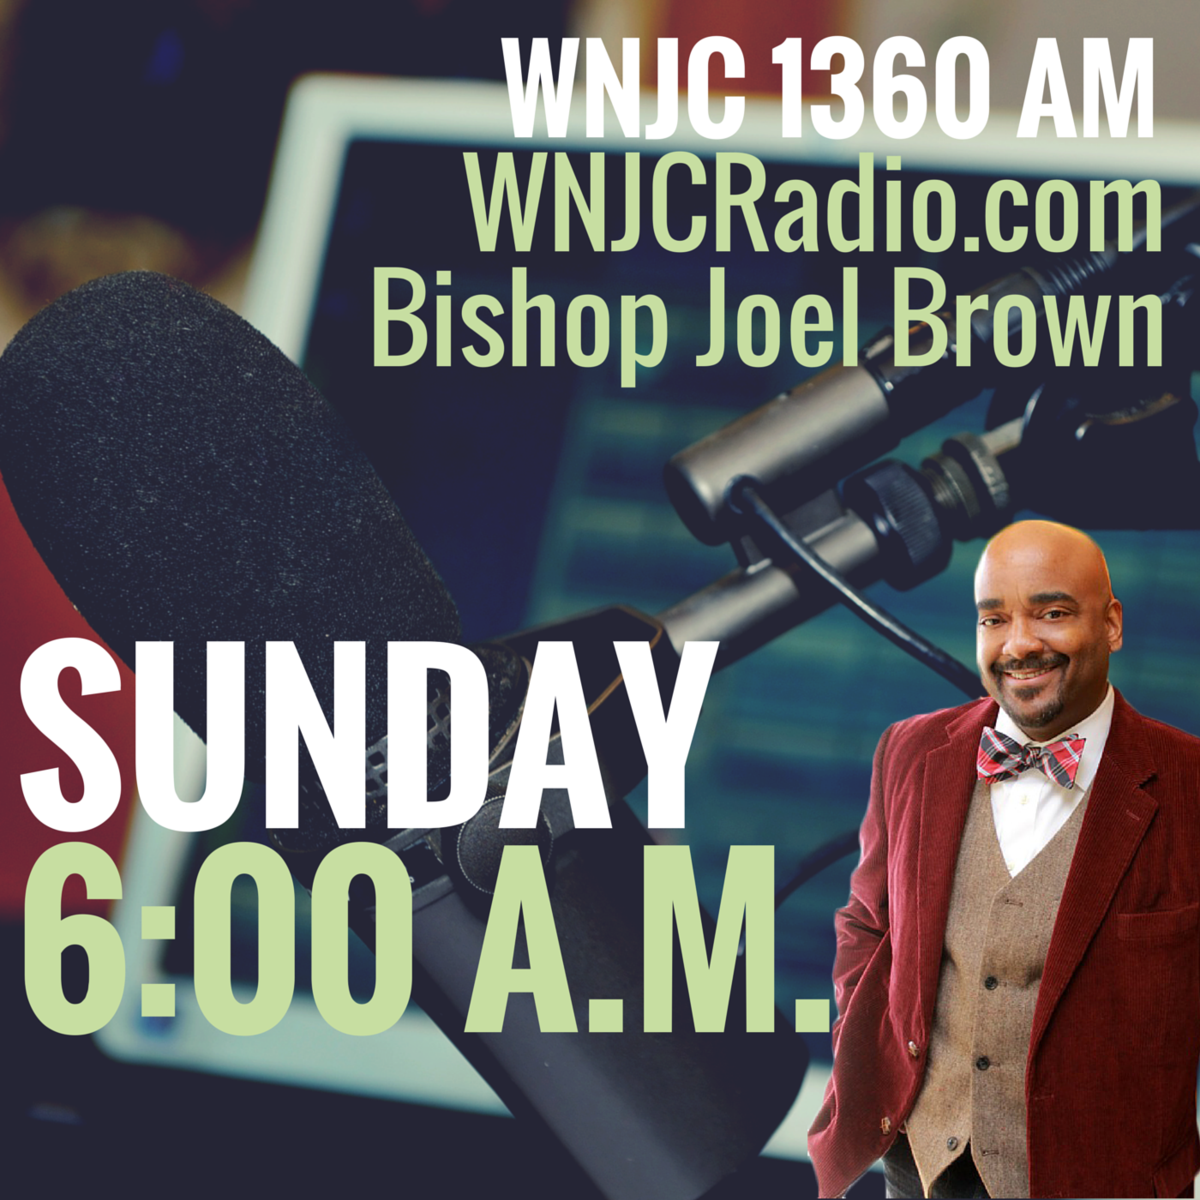 New Radio Broadcast - Bishop Joel Brown on WNJC 1360 AM